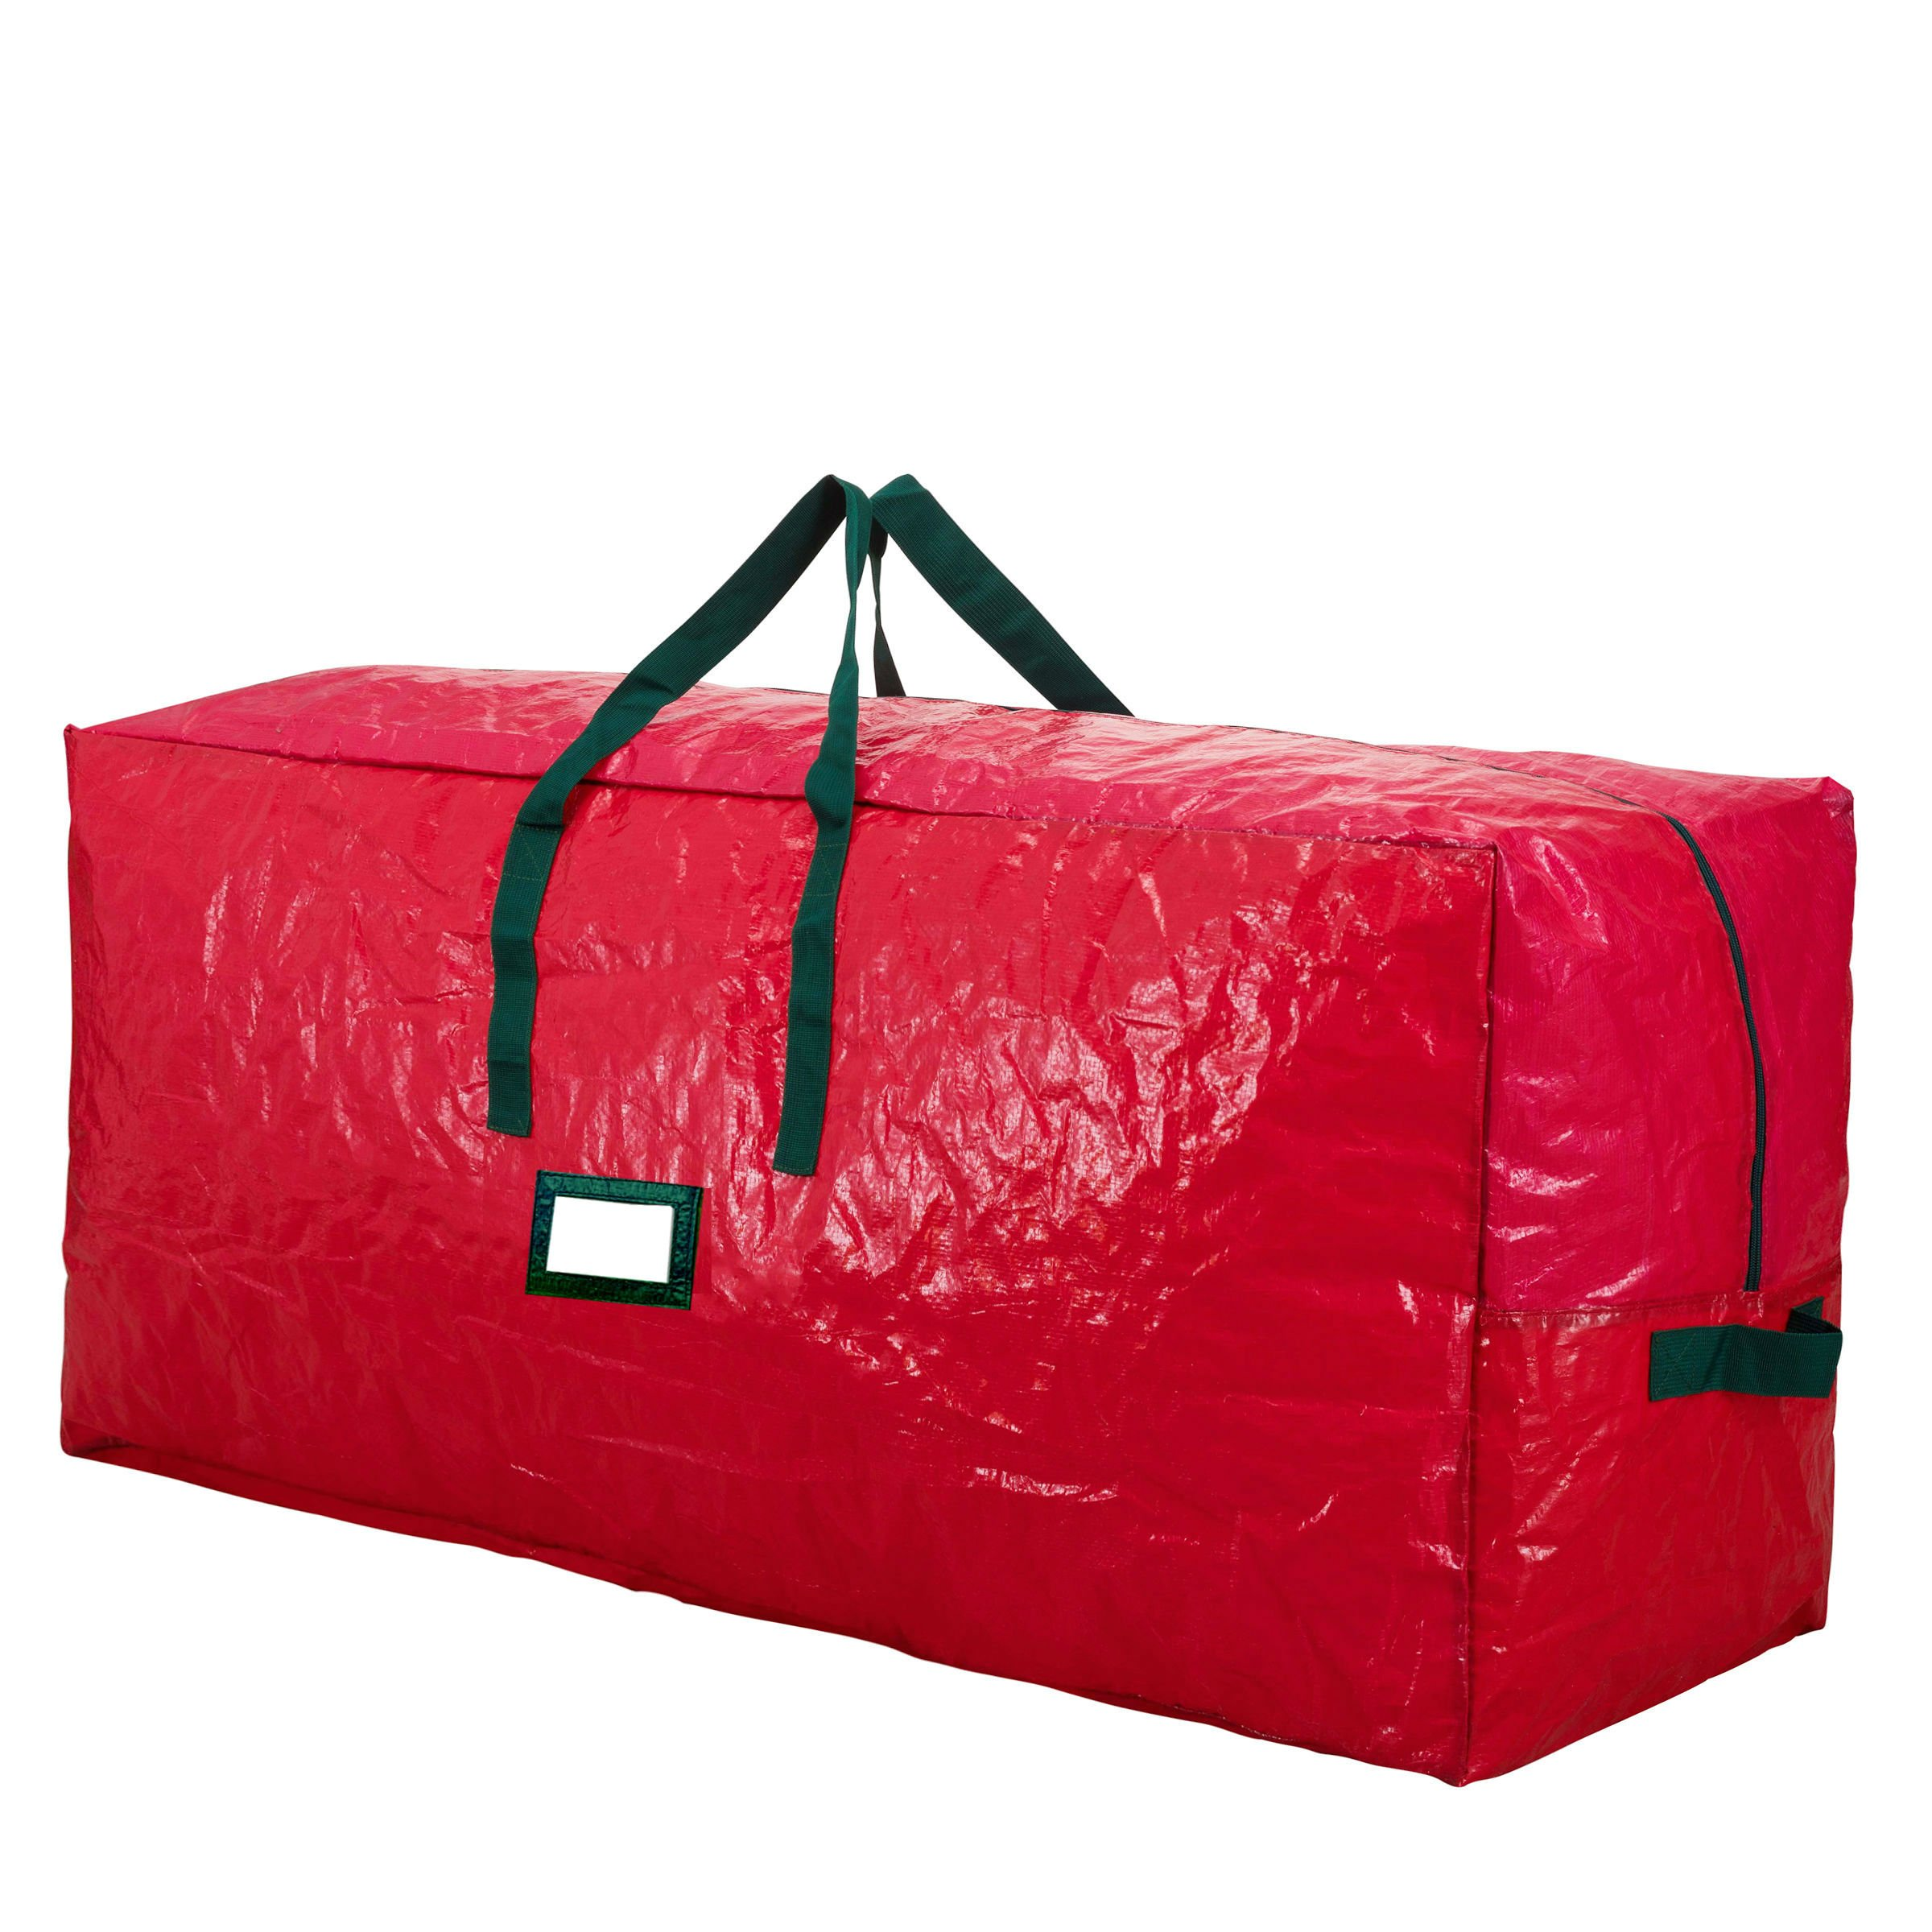 Premium Red Extra Large Holiday Christmas Tree Storage Bag-Fits Trees up to 9 Feet Tall-Tear Resistant Zippered Bag with Reinforced Handles -65 x 15 x 30 (RED)